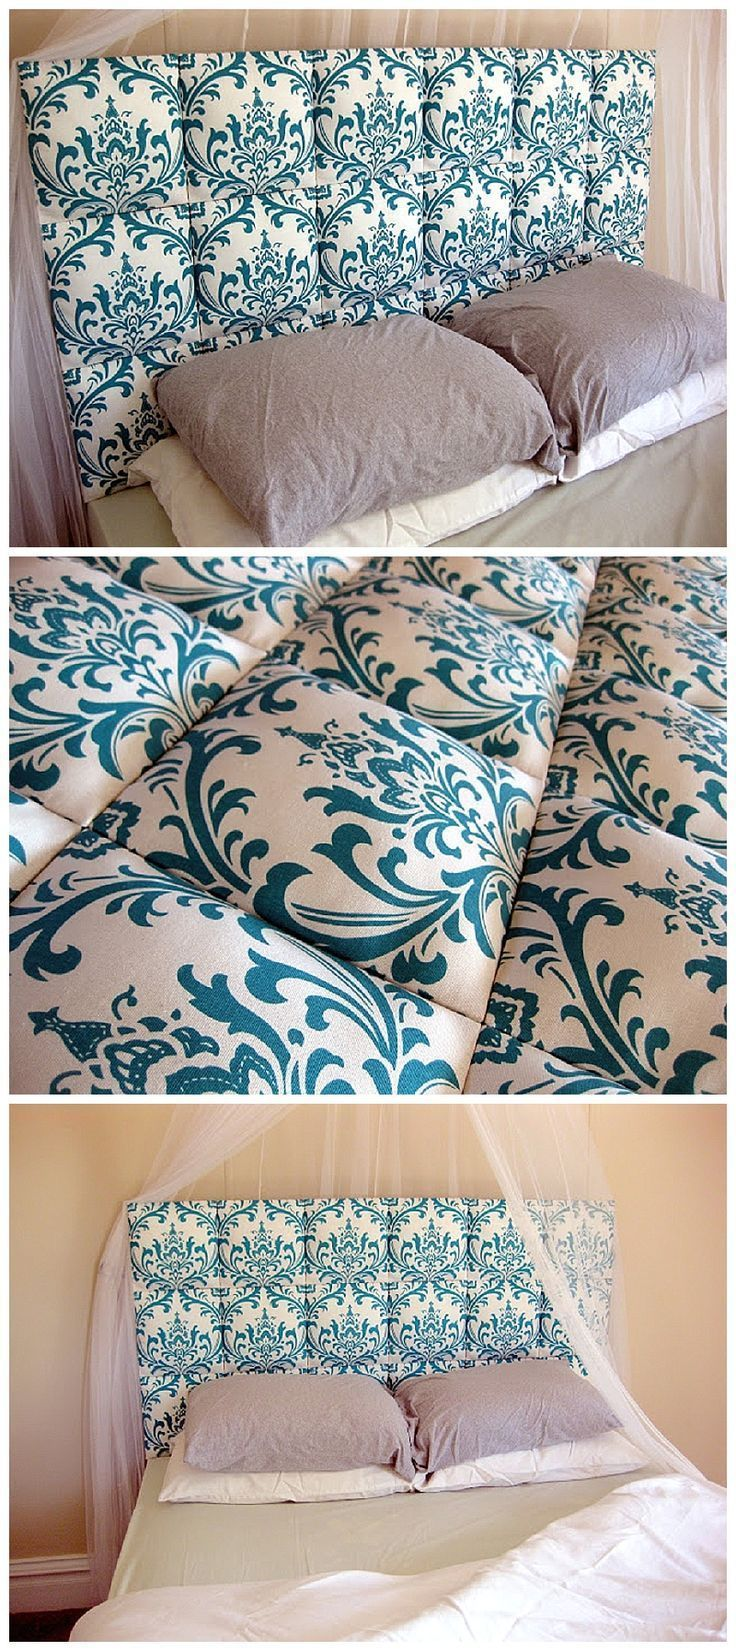 Cover Headboard With Fabric Best 25 Diy Upholstered Headboard Ideas On Pinterest Diy Tufted